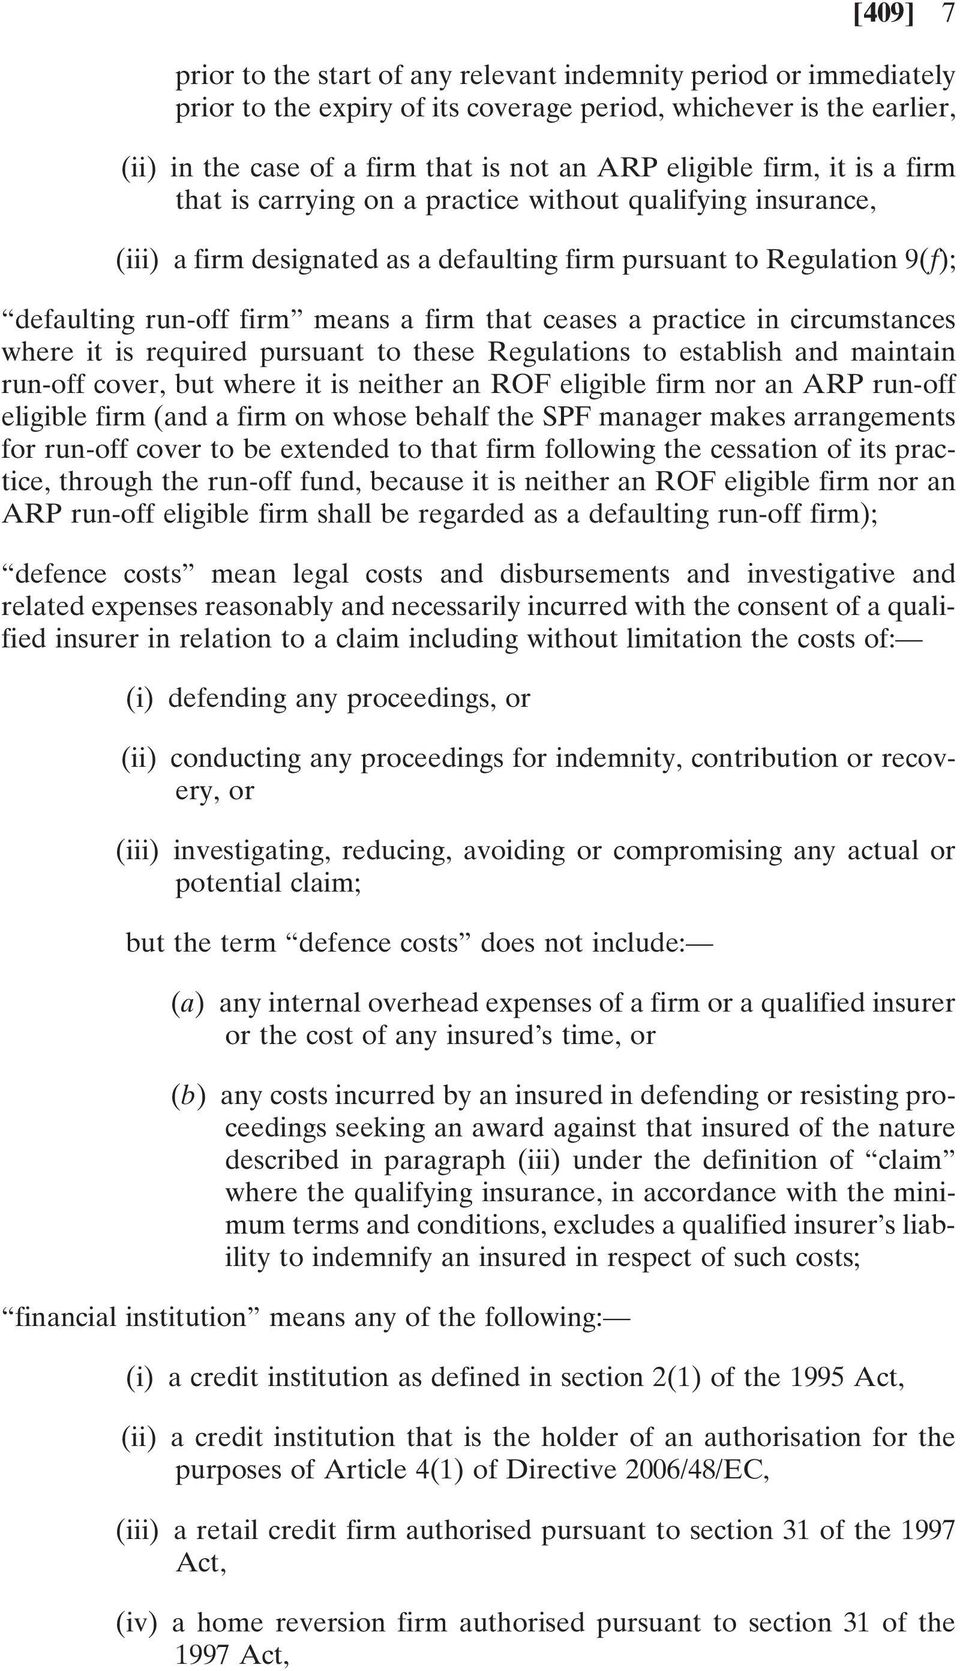 ceases a practice in circumstances where it is required pursuant to these Regulations to establish and maintain run-off cover, but where it is neither an ROF eligible firm nor an ARP run-off eligible